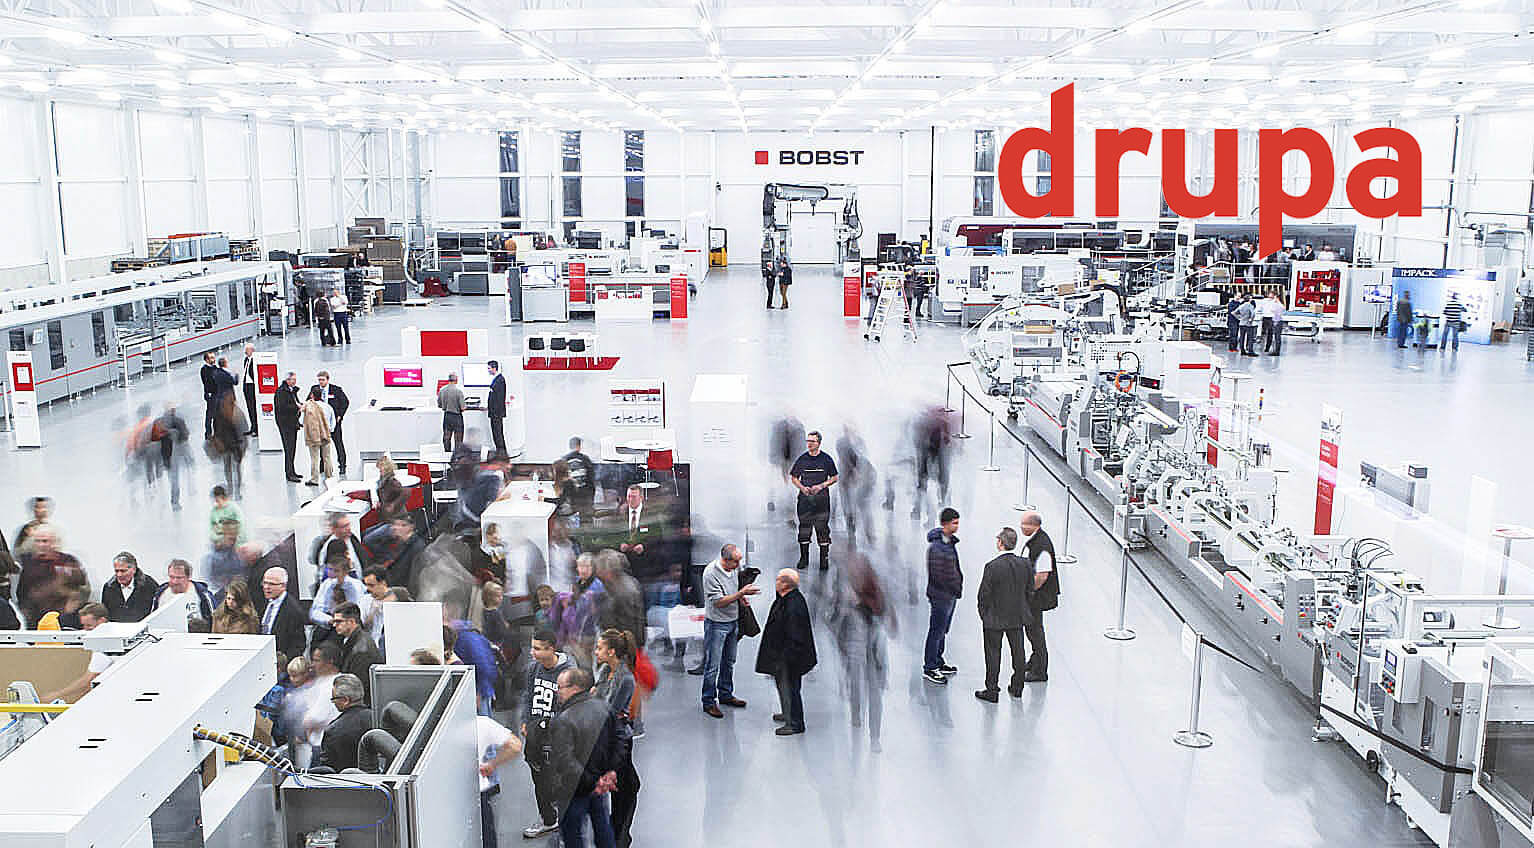 drupa 2021: Bobst and Xerox cancel